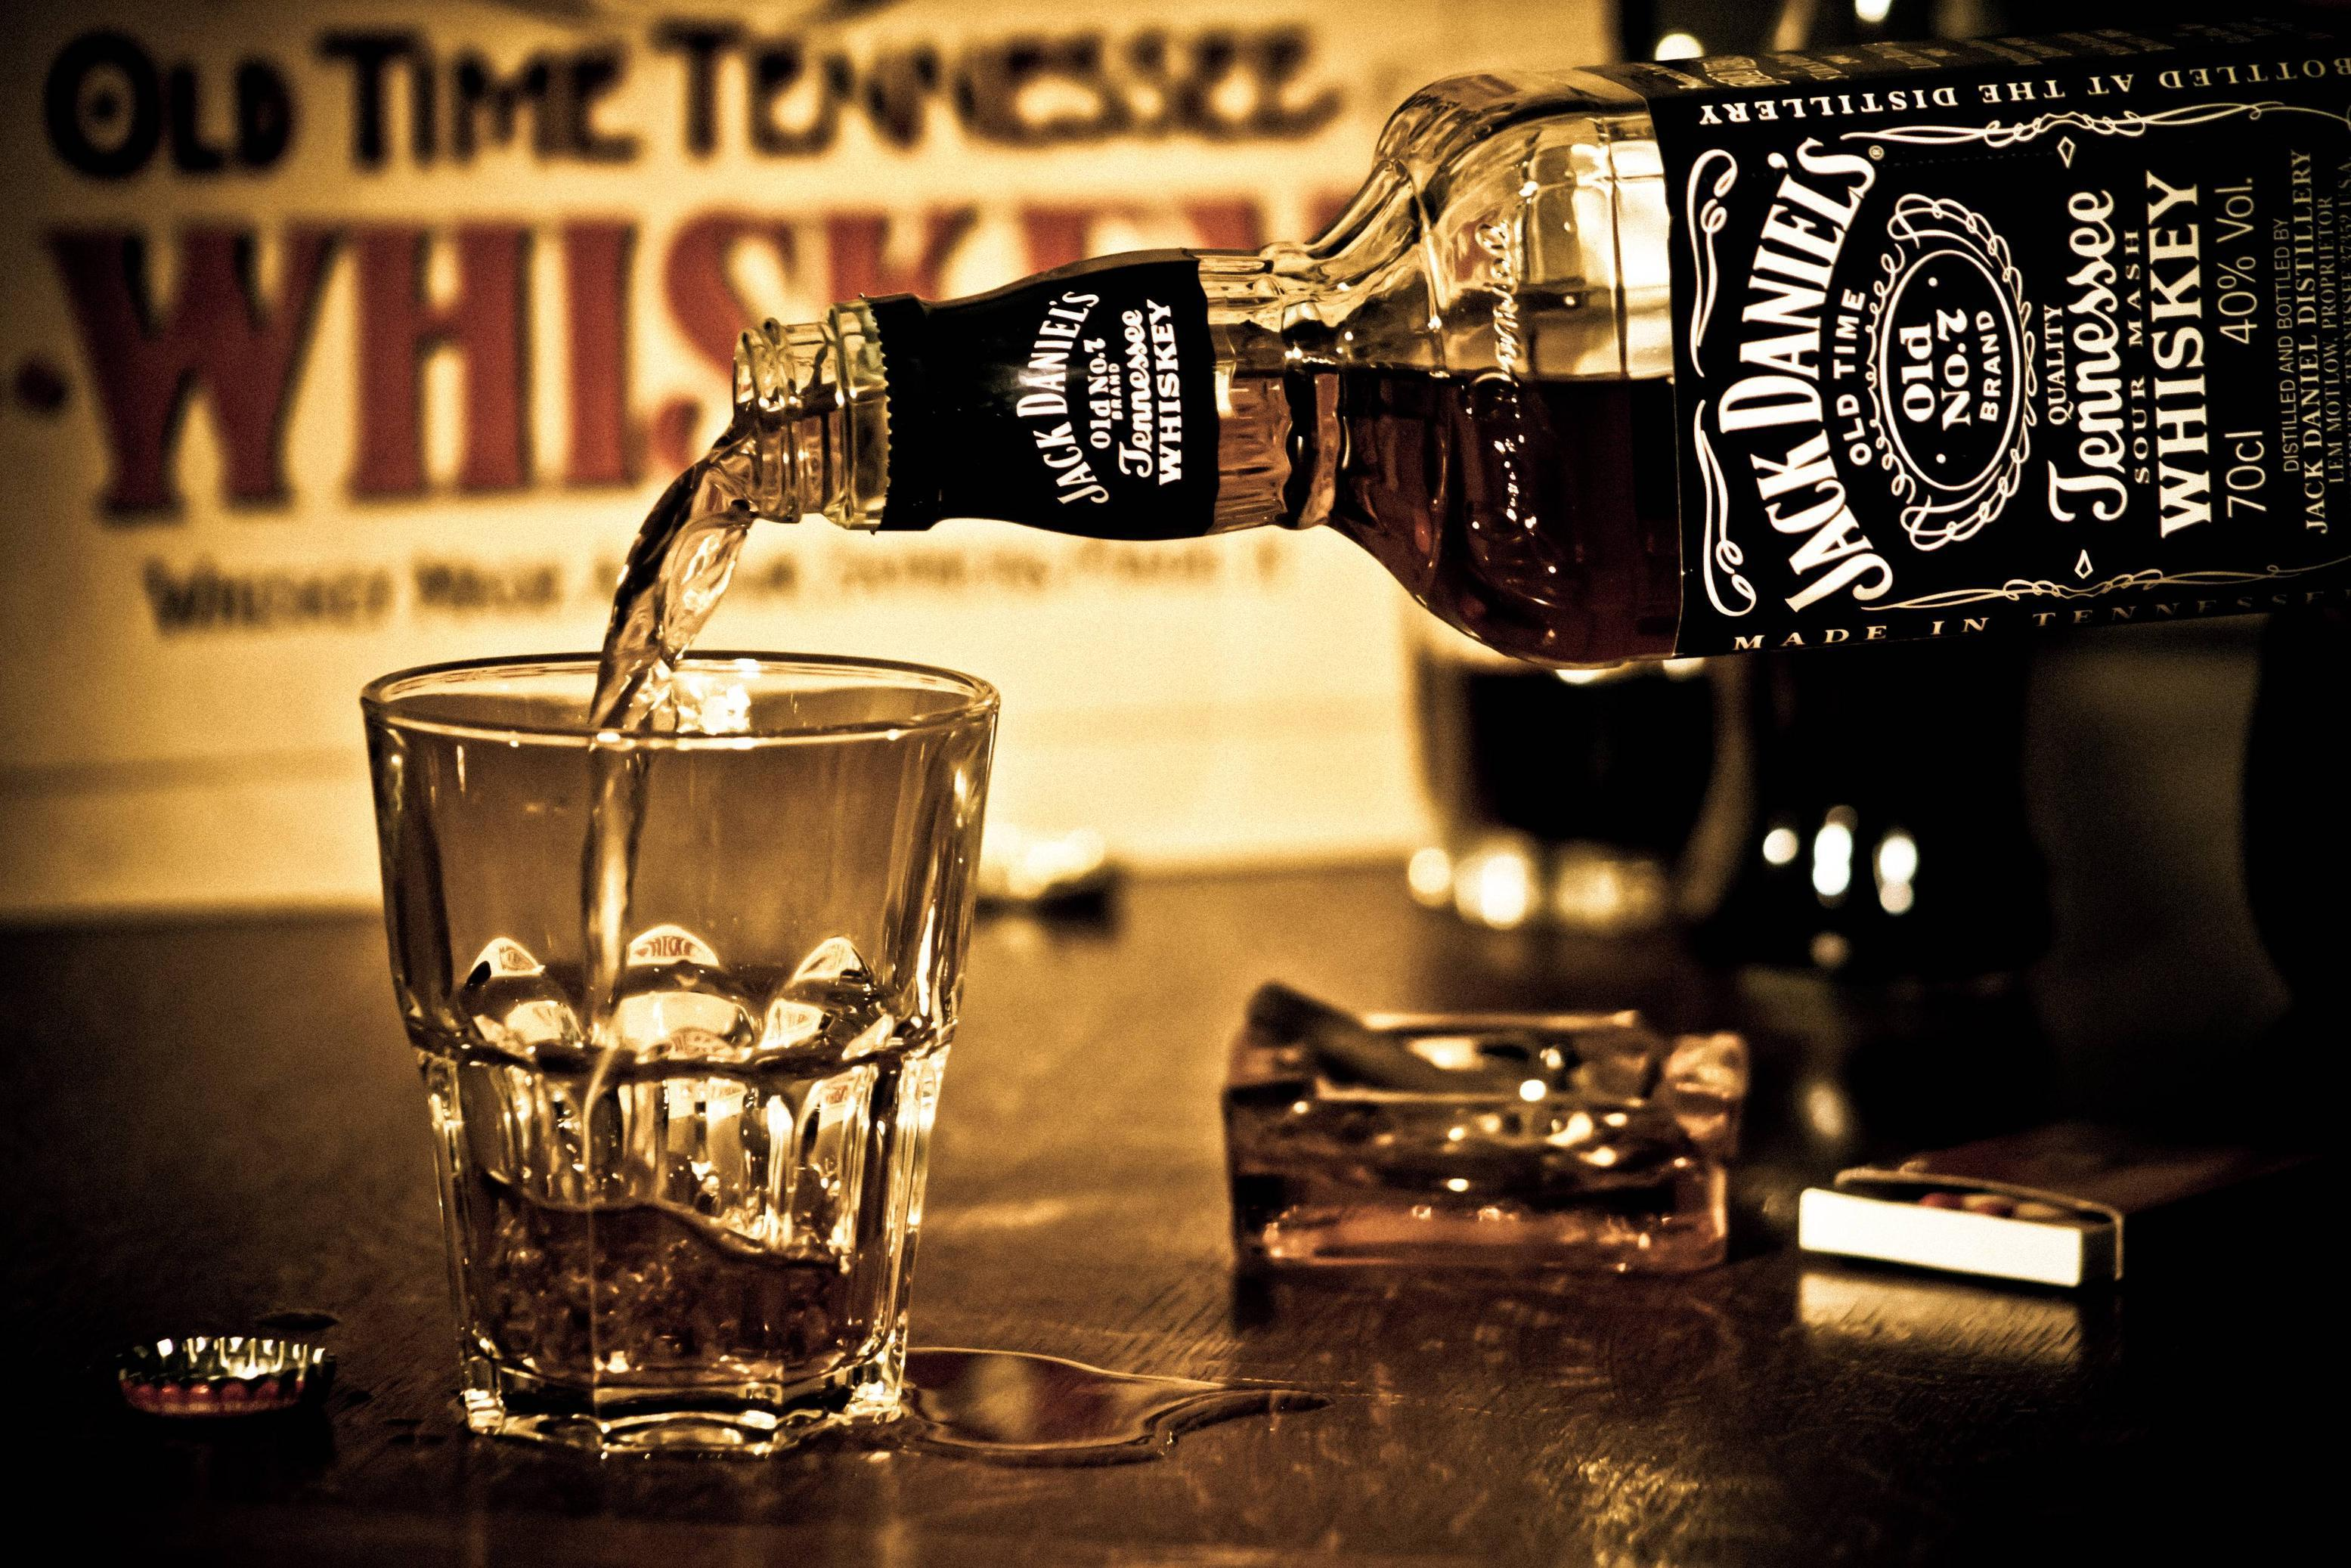 whisky 1080p wallpapers hd - photo #5